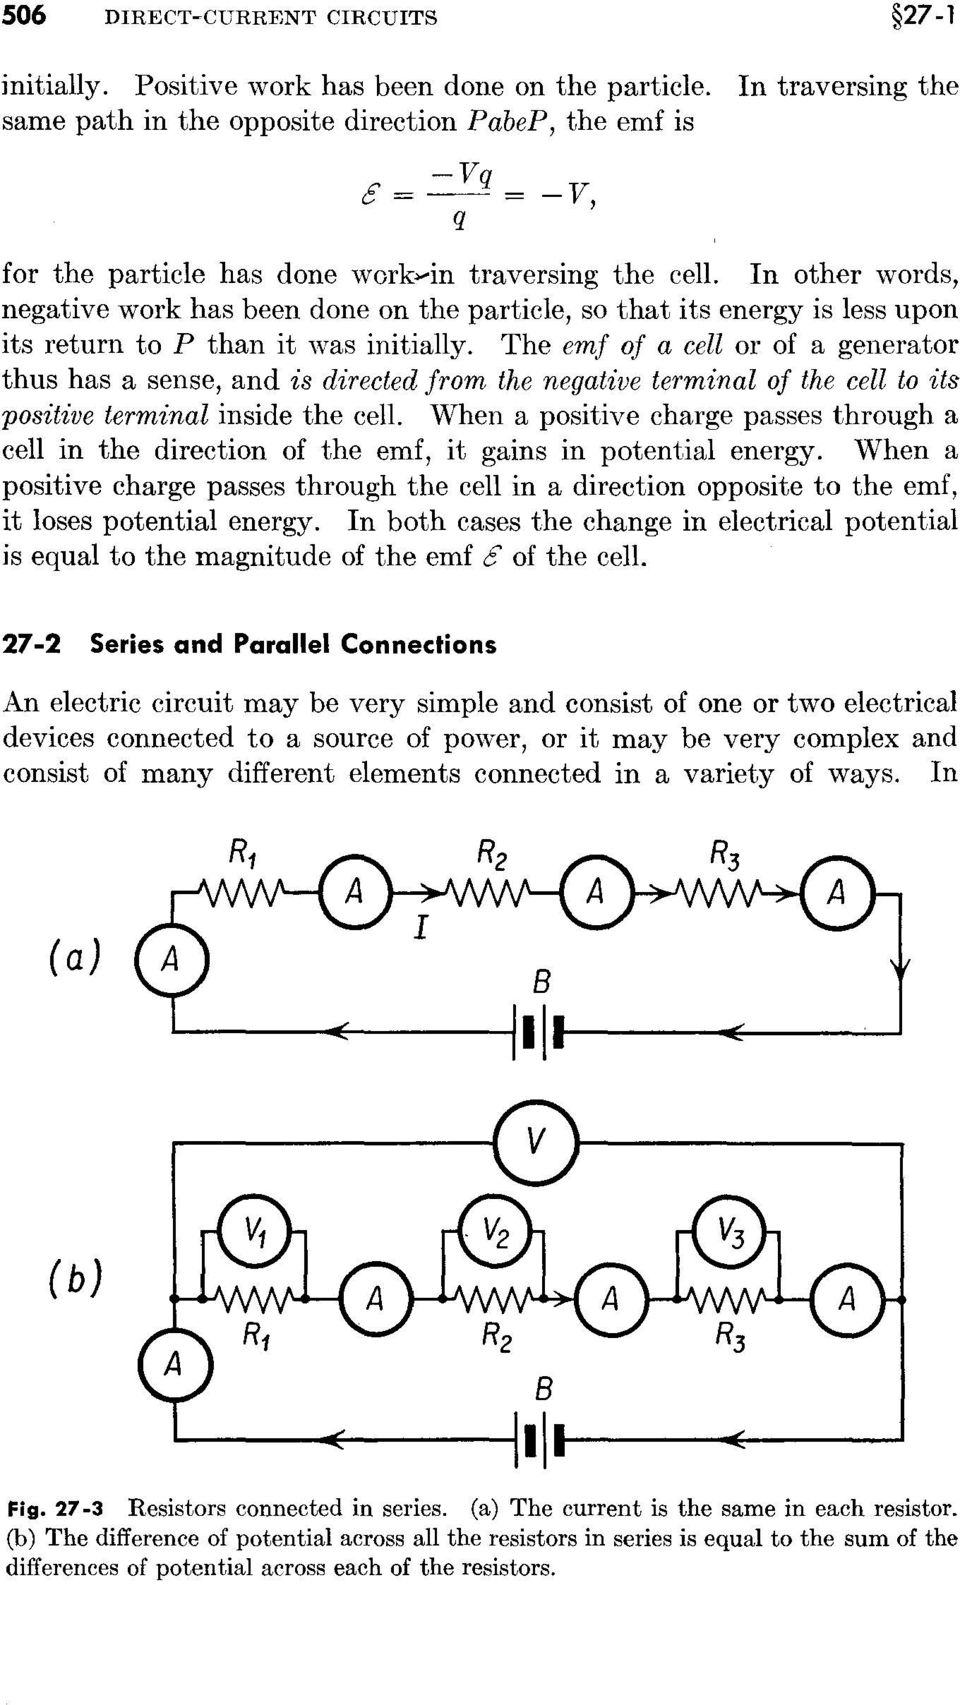 Physics Chapter 27 Direct Current Circuits Pdf Parallel The Cells Are Connected In All Other Words Negative Work Has Been Done On Particle So That Its